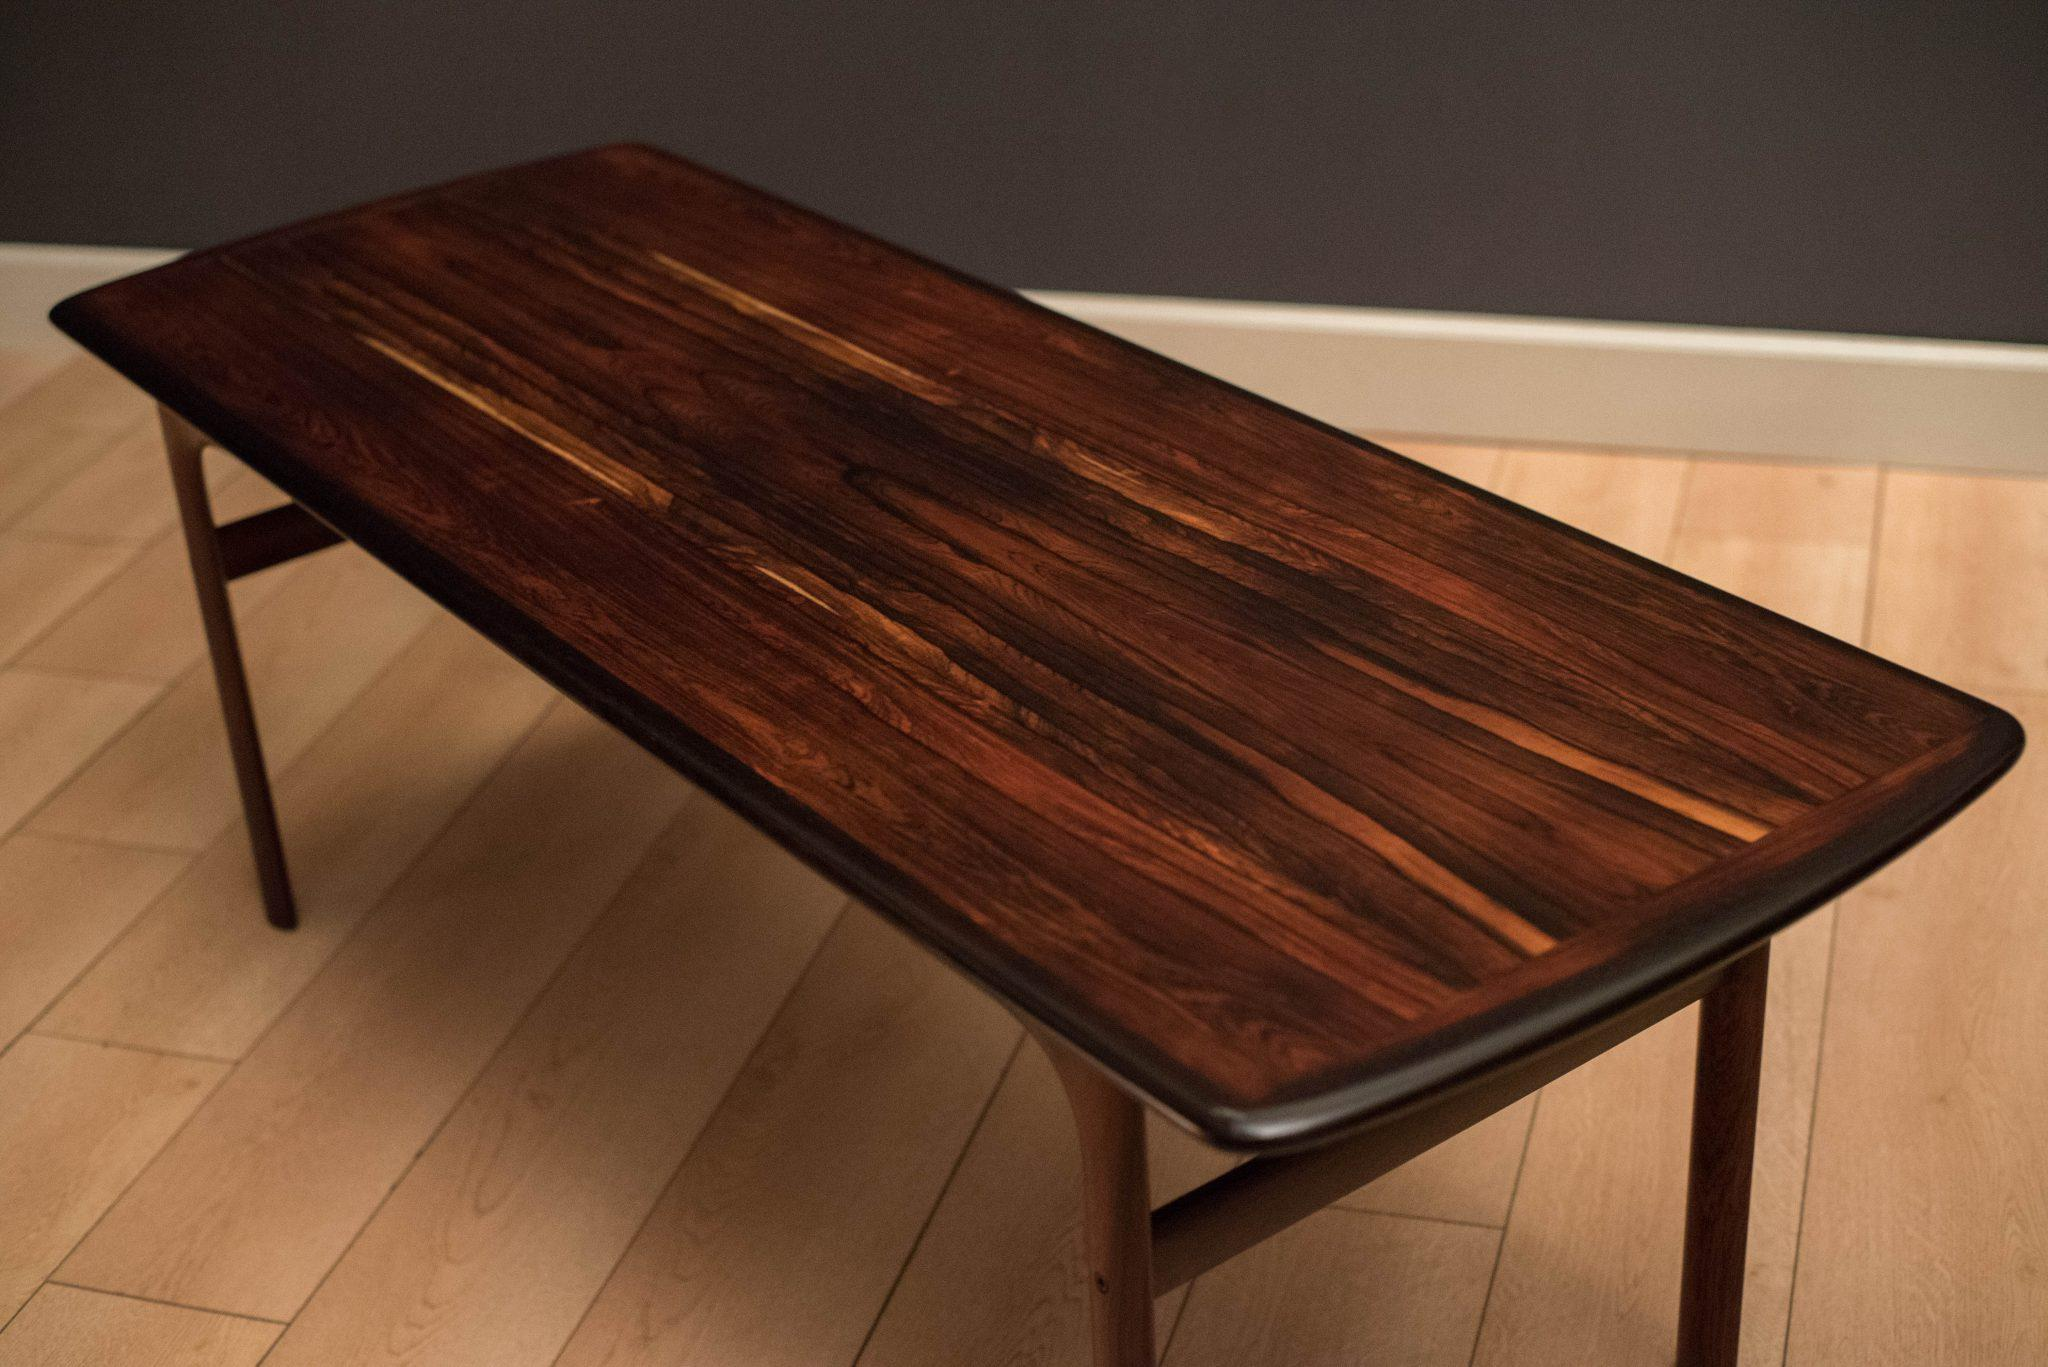 Superbe Mid Century Modern Coffee Table Manufactured By Westnofa Of Norway. Table  Top Features Gorgeous